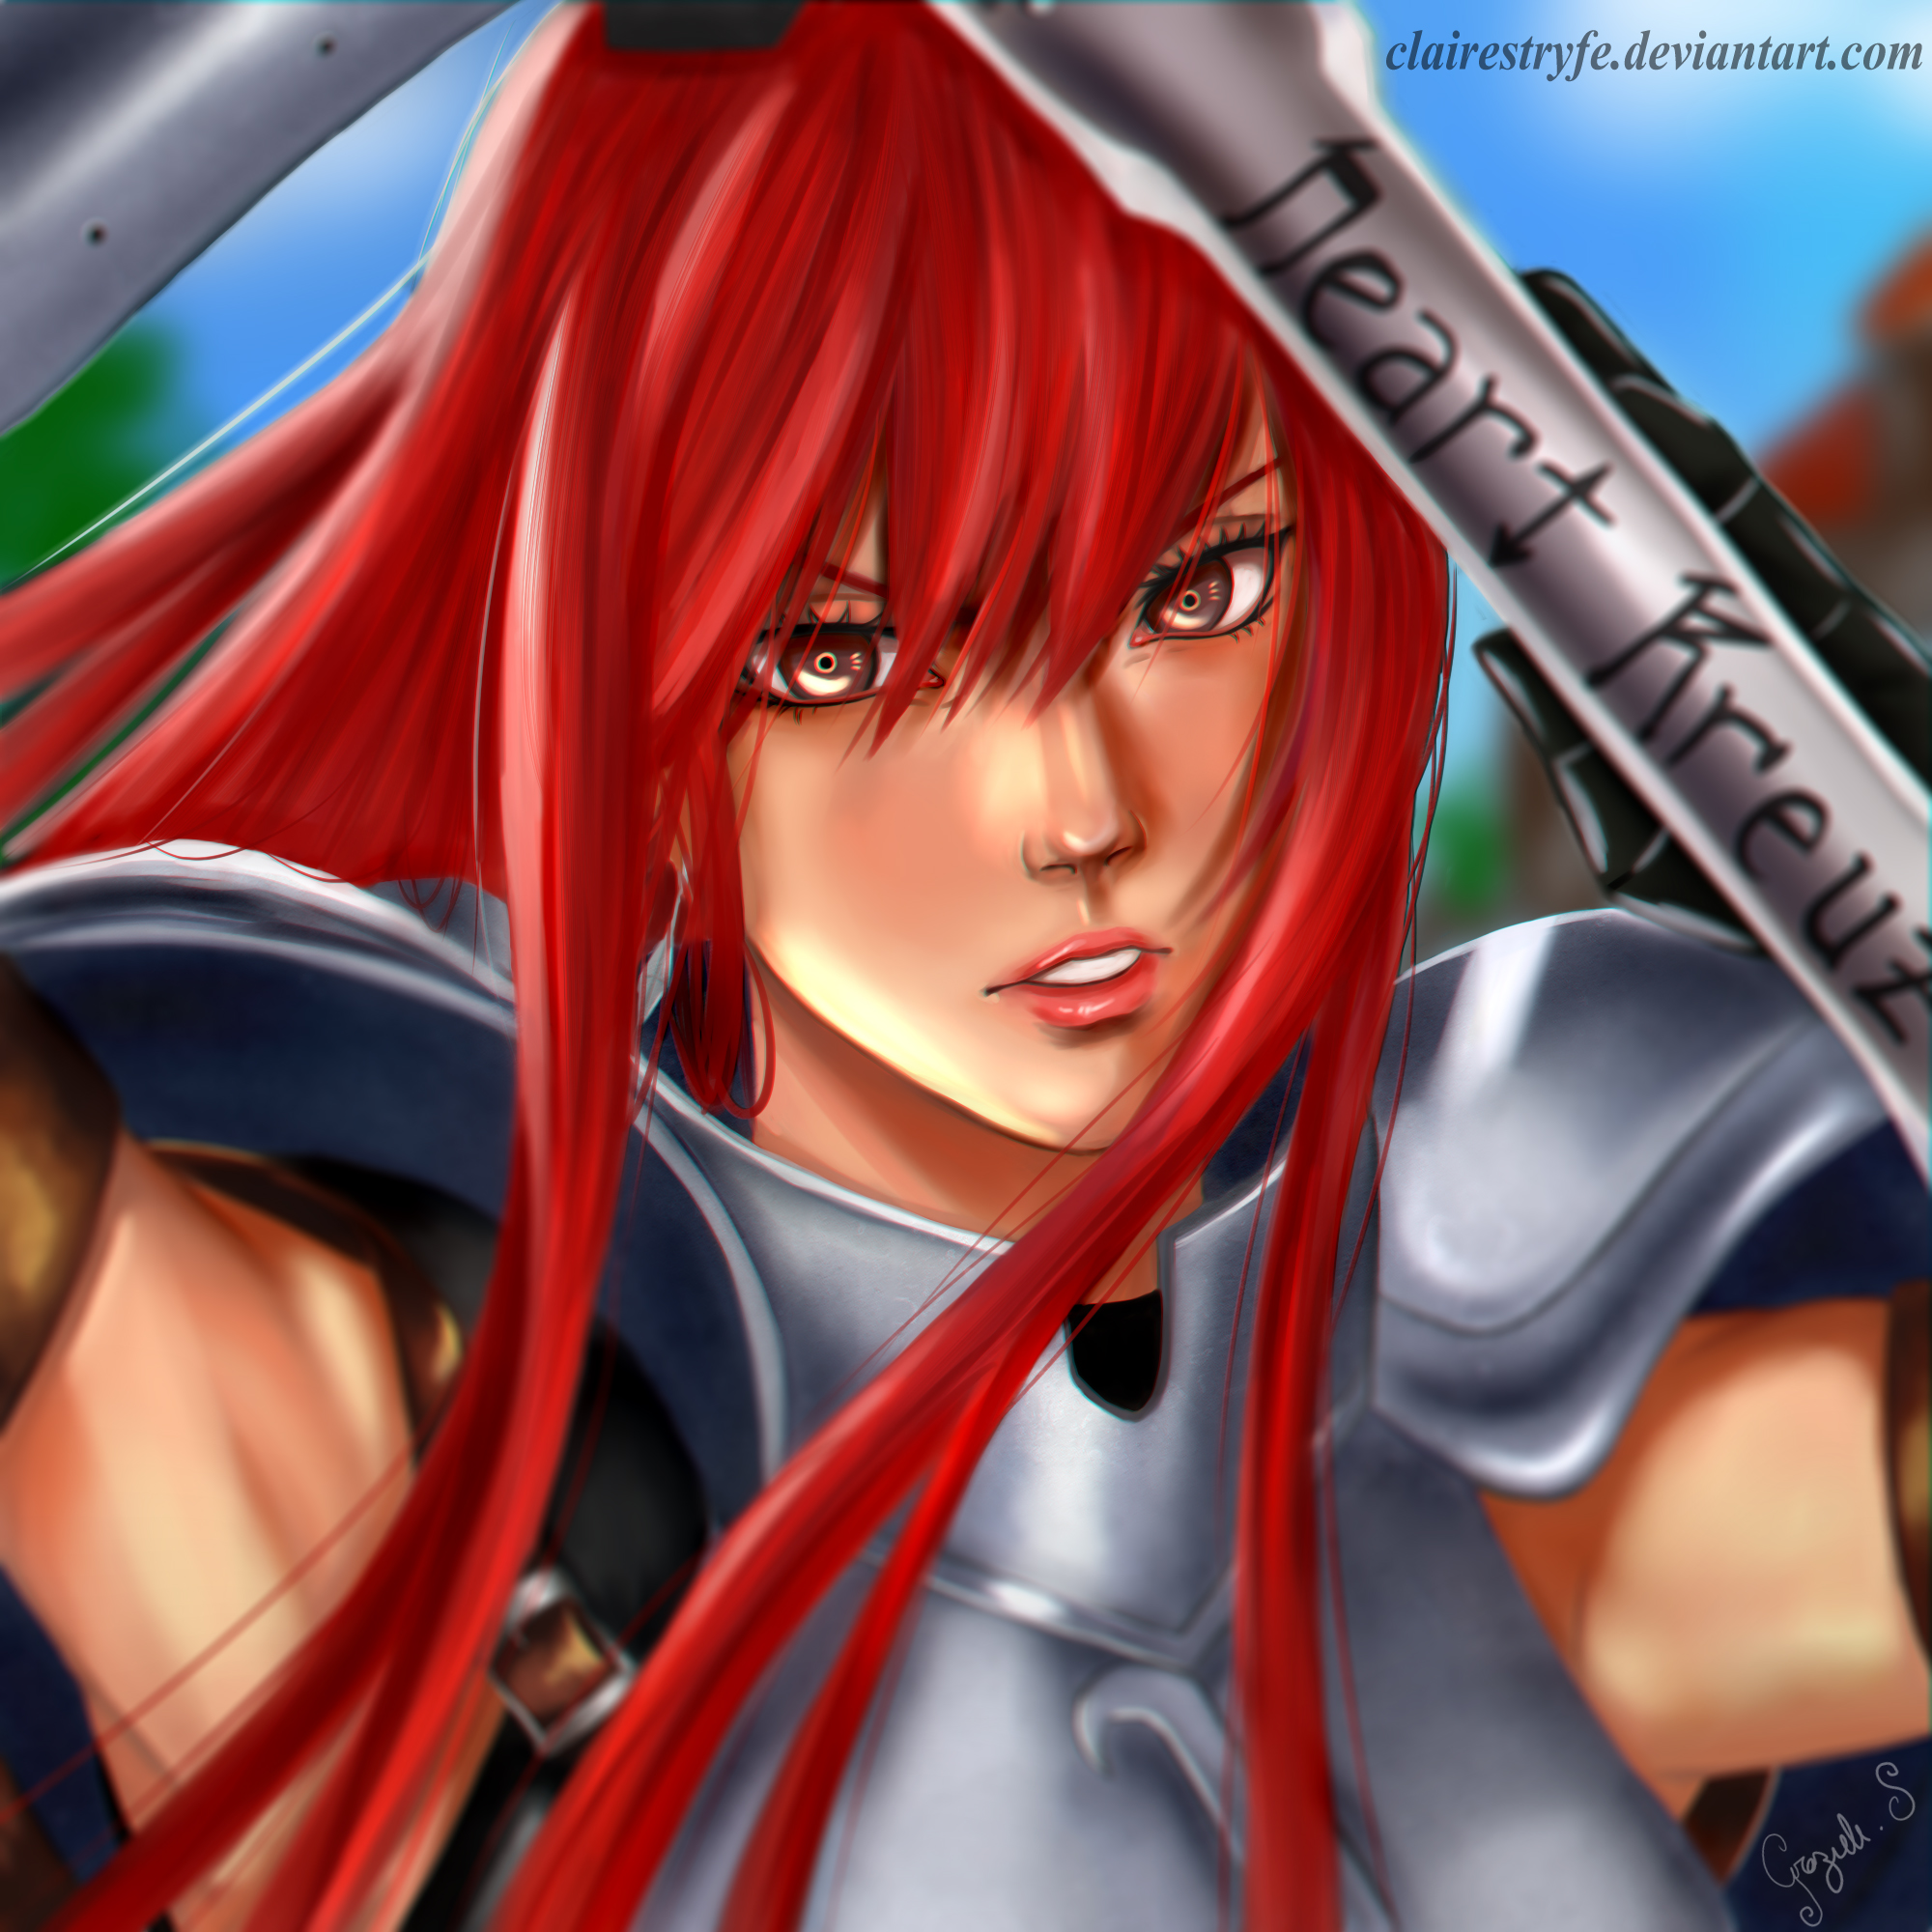 Erza Scarlet Wallpaper: Erza Scarlet By ClaireStryfe On DeviantArt